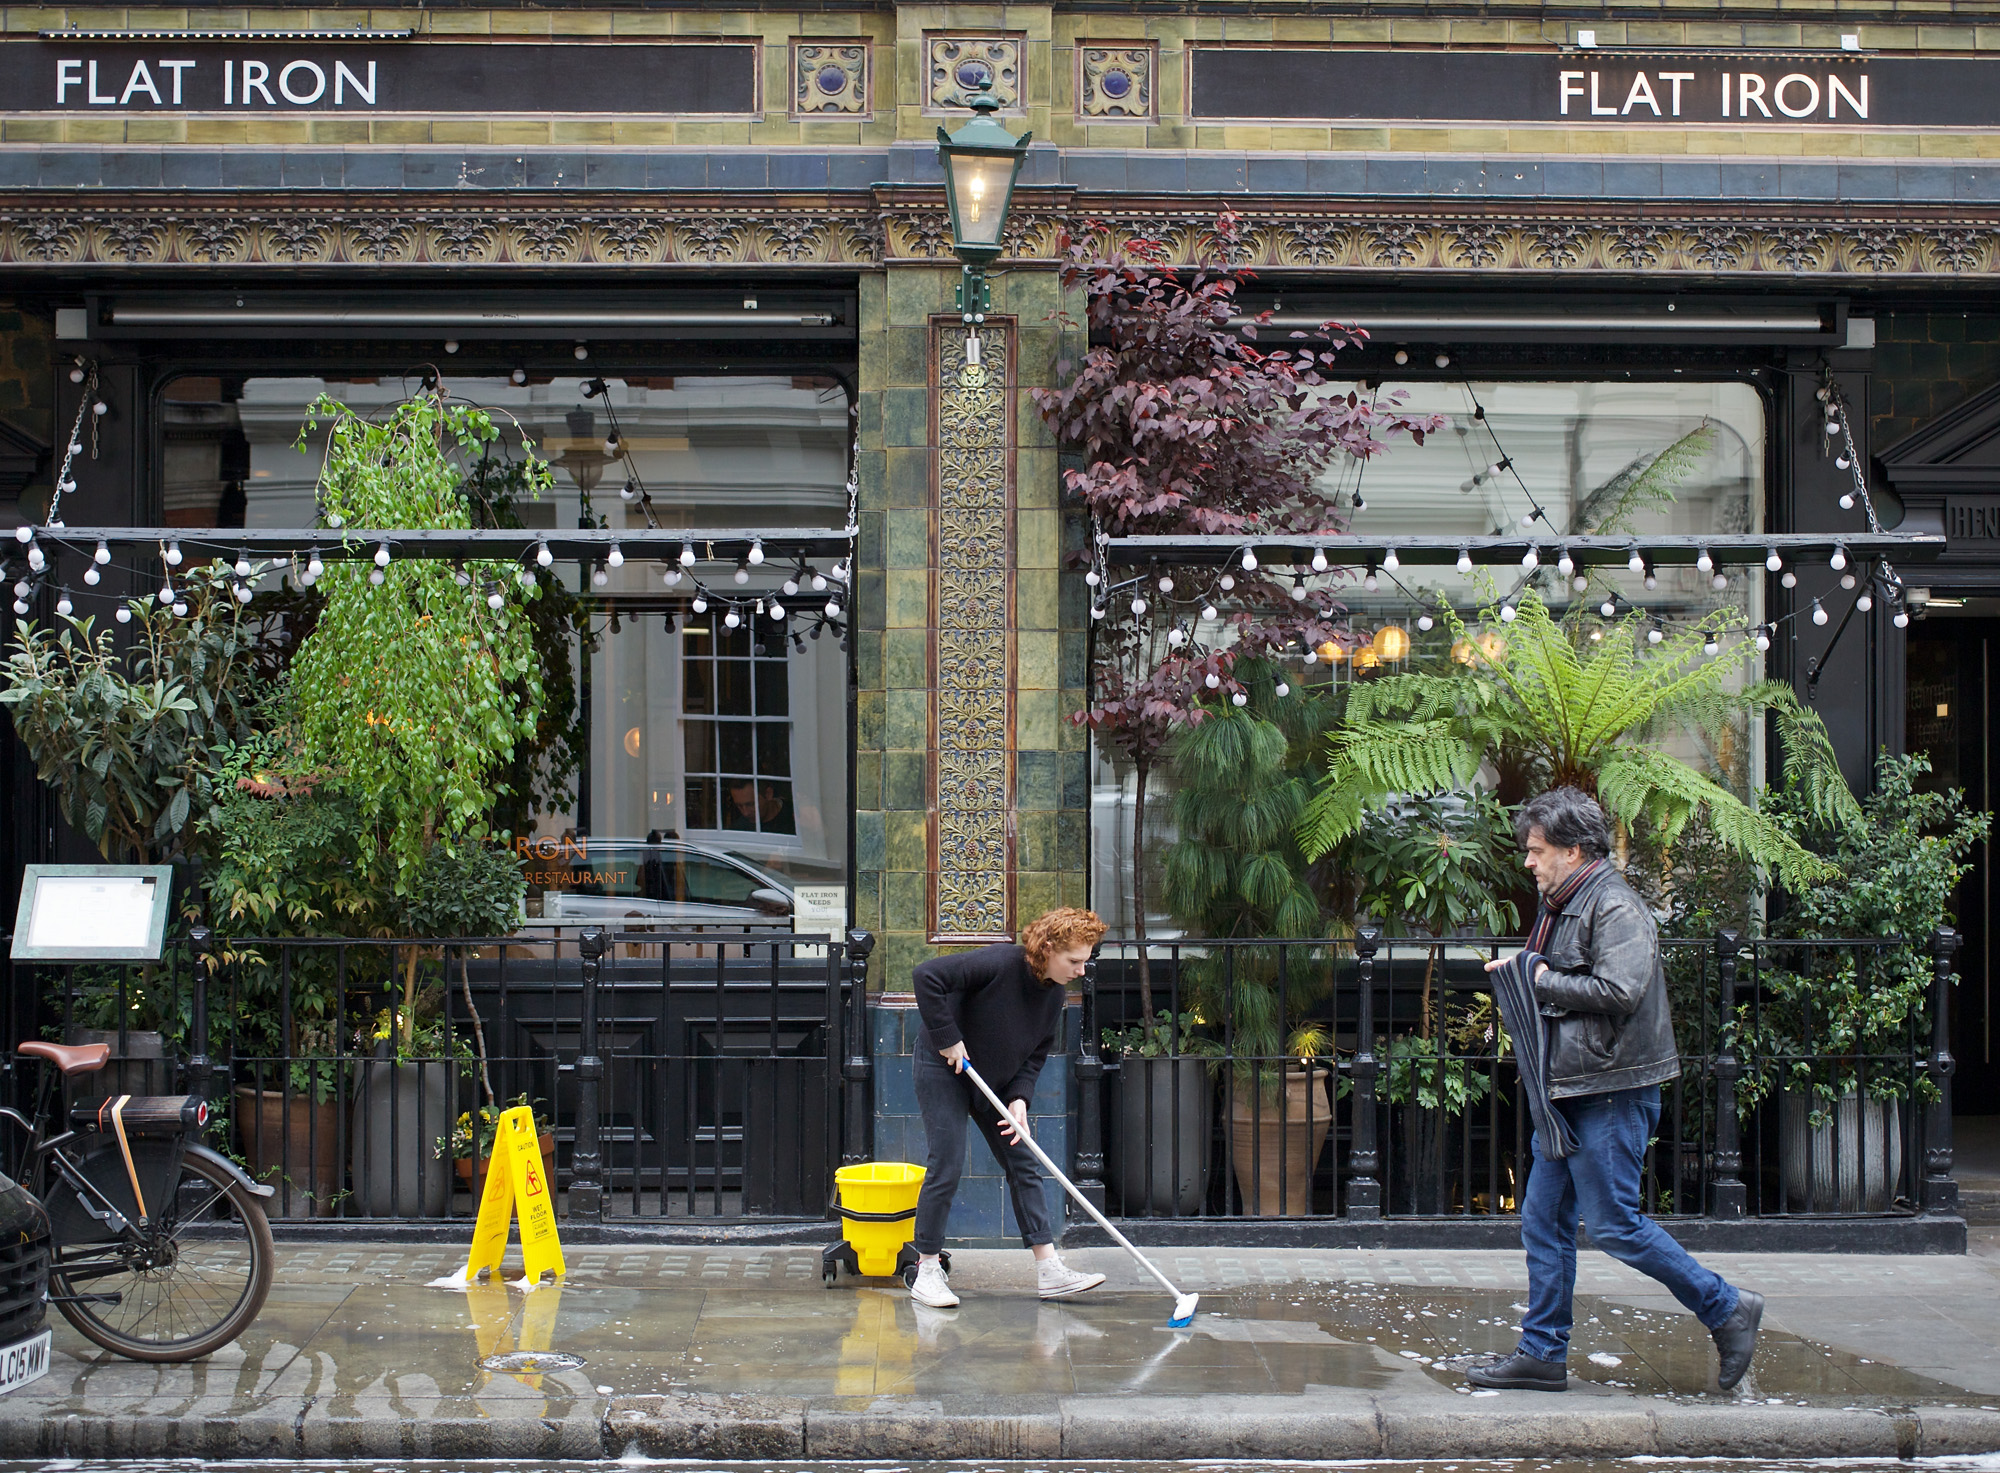 cleaning pavement outside restaurant